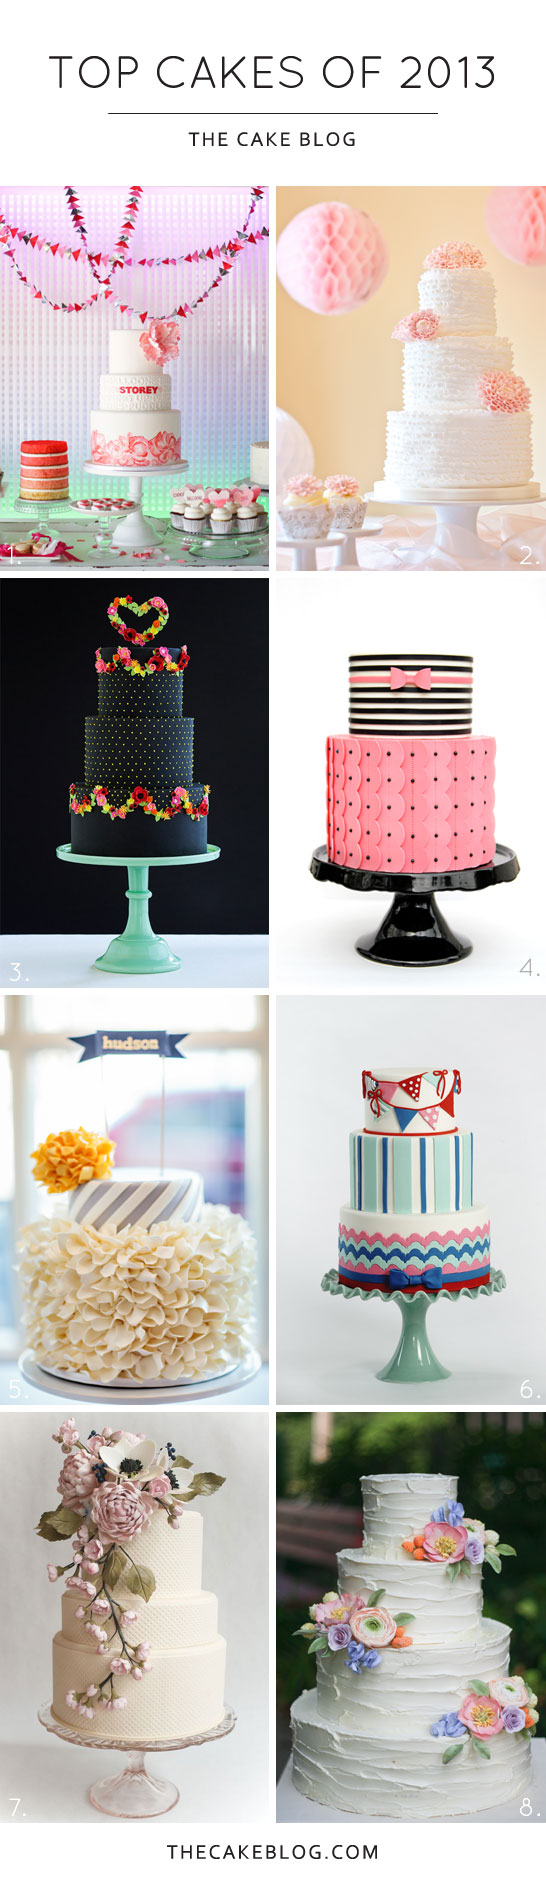 Top Cake Designs of 2013  |  TheCakeBlog.com